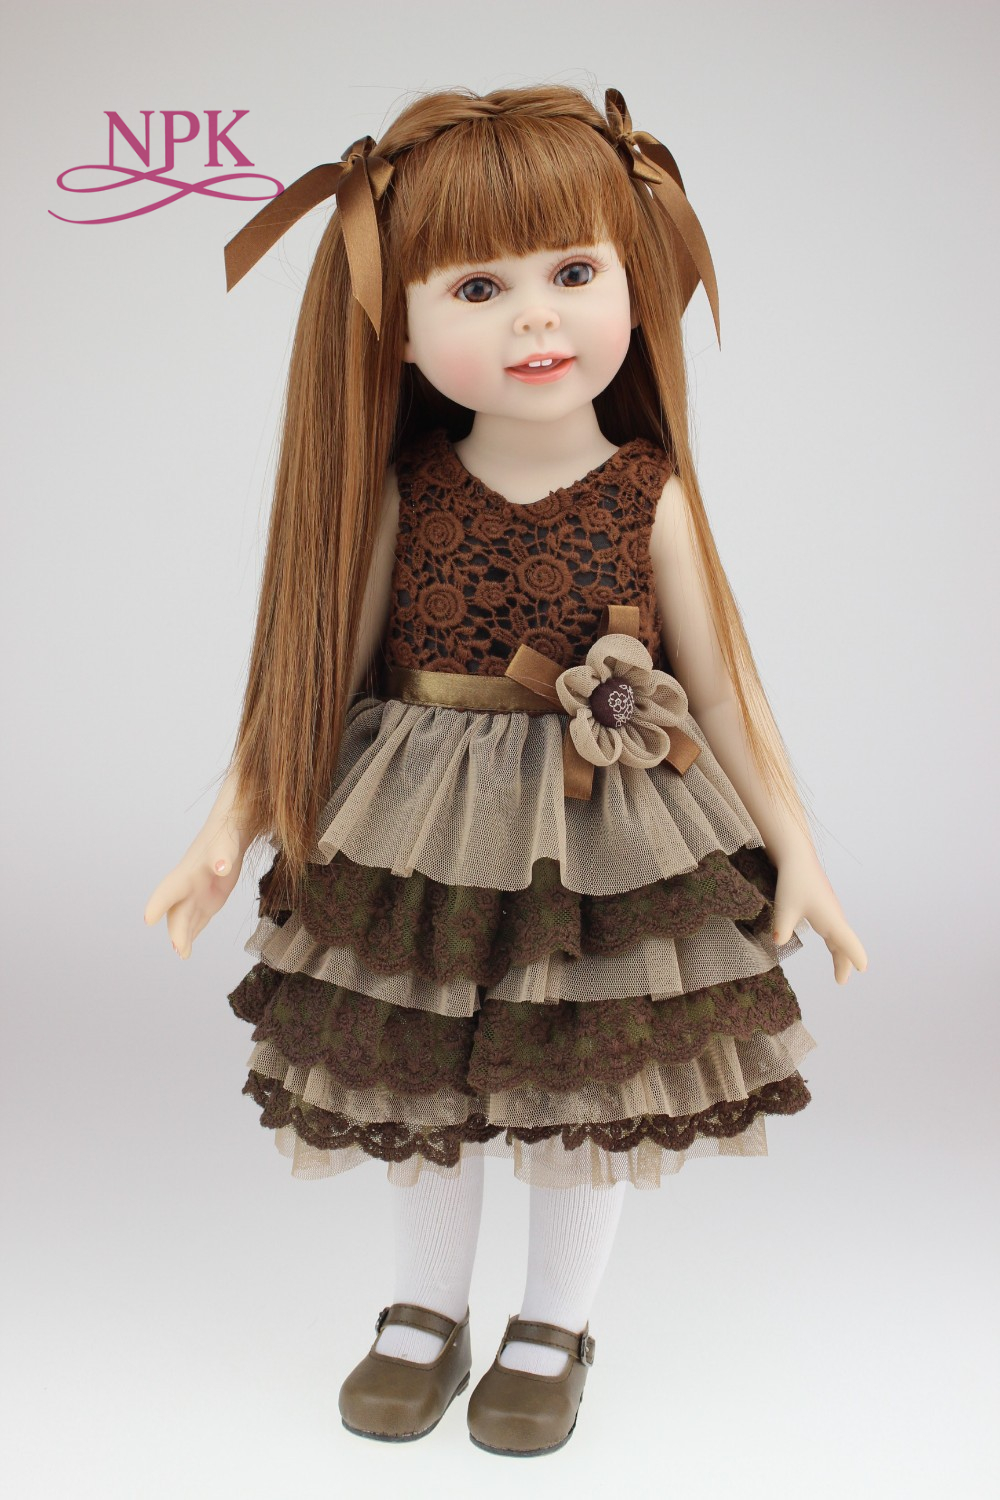 stenzhornDZ 18 BJD 1 8 Eugenia with eyes have white and normal color